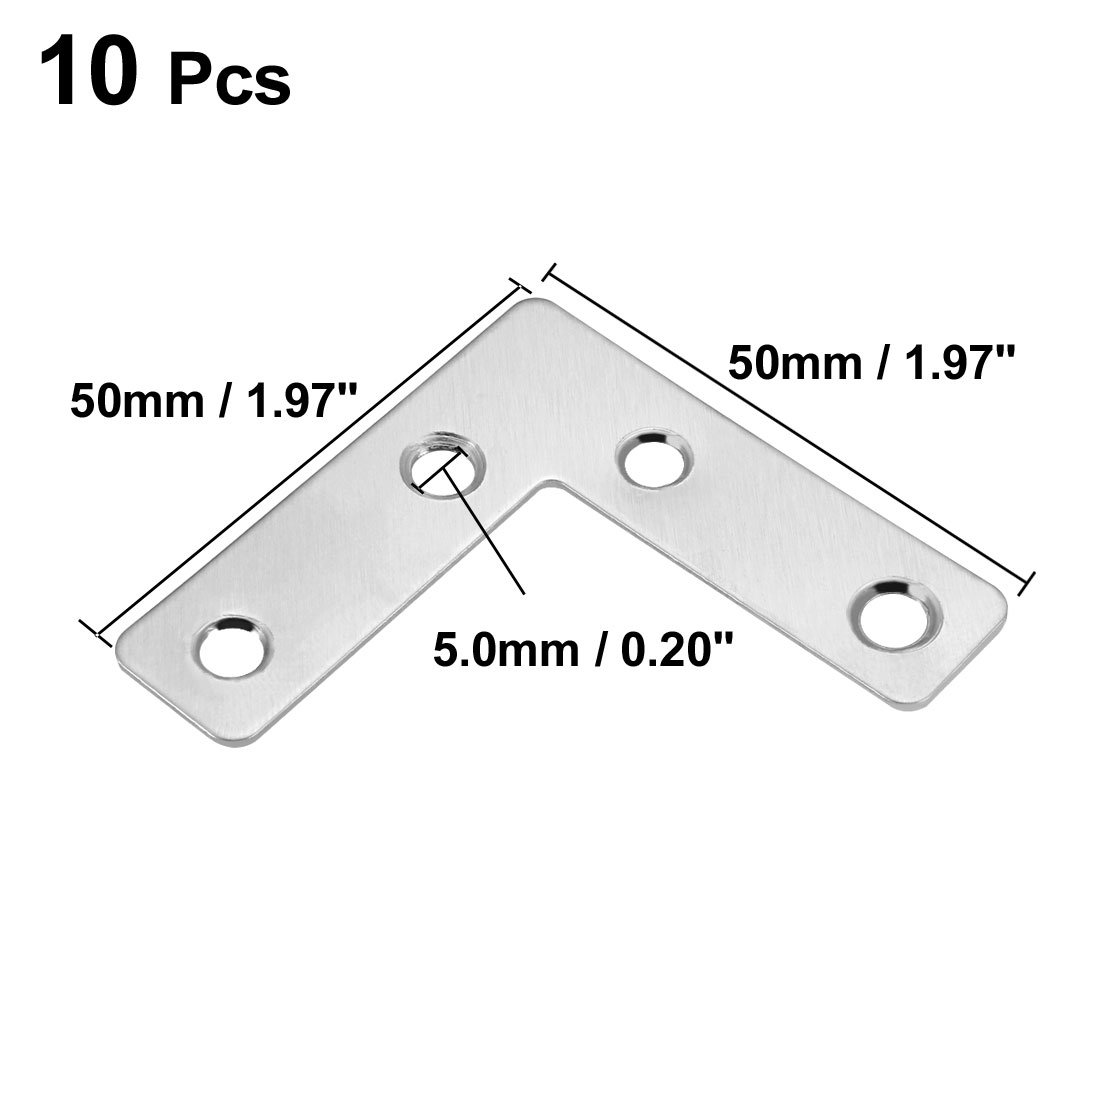 60mmx60mm sourcingmap Flat Plate L Shape Pack of 10 Stainless Steel 304 Angle Corner Brace Repair Brackets